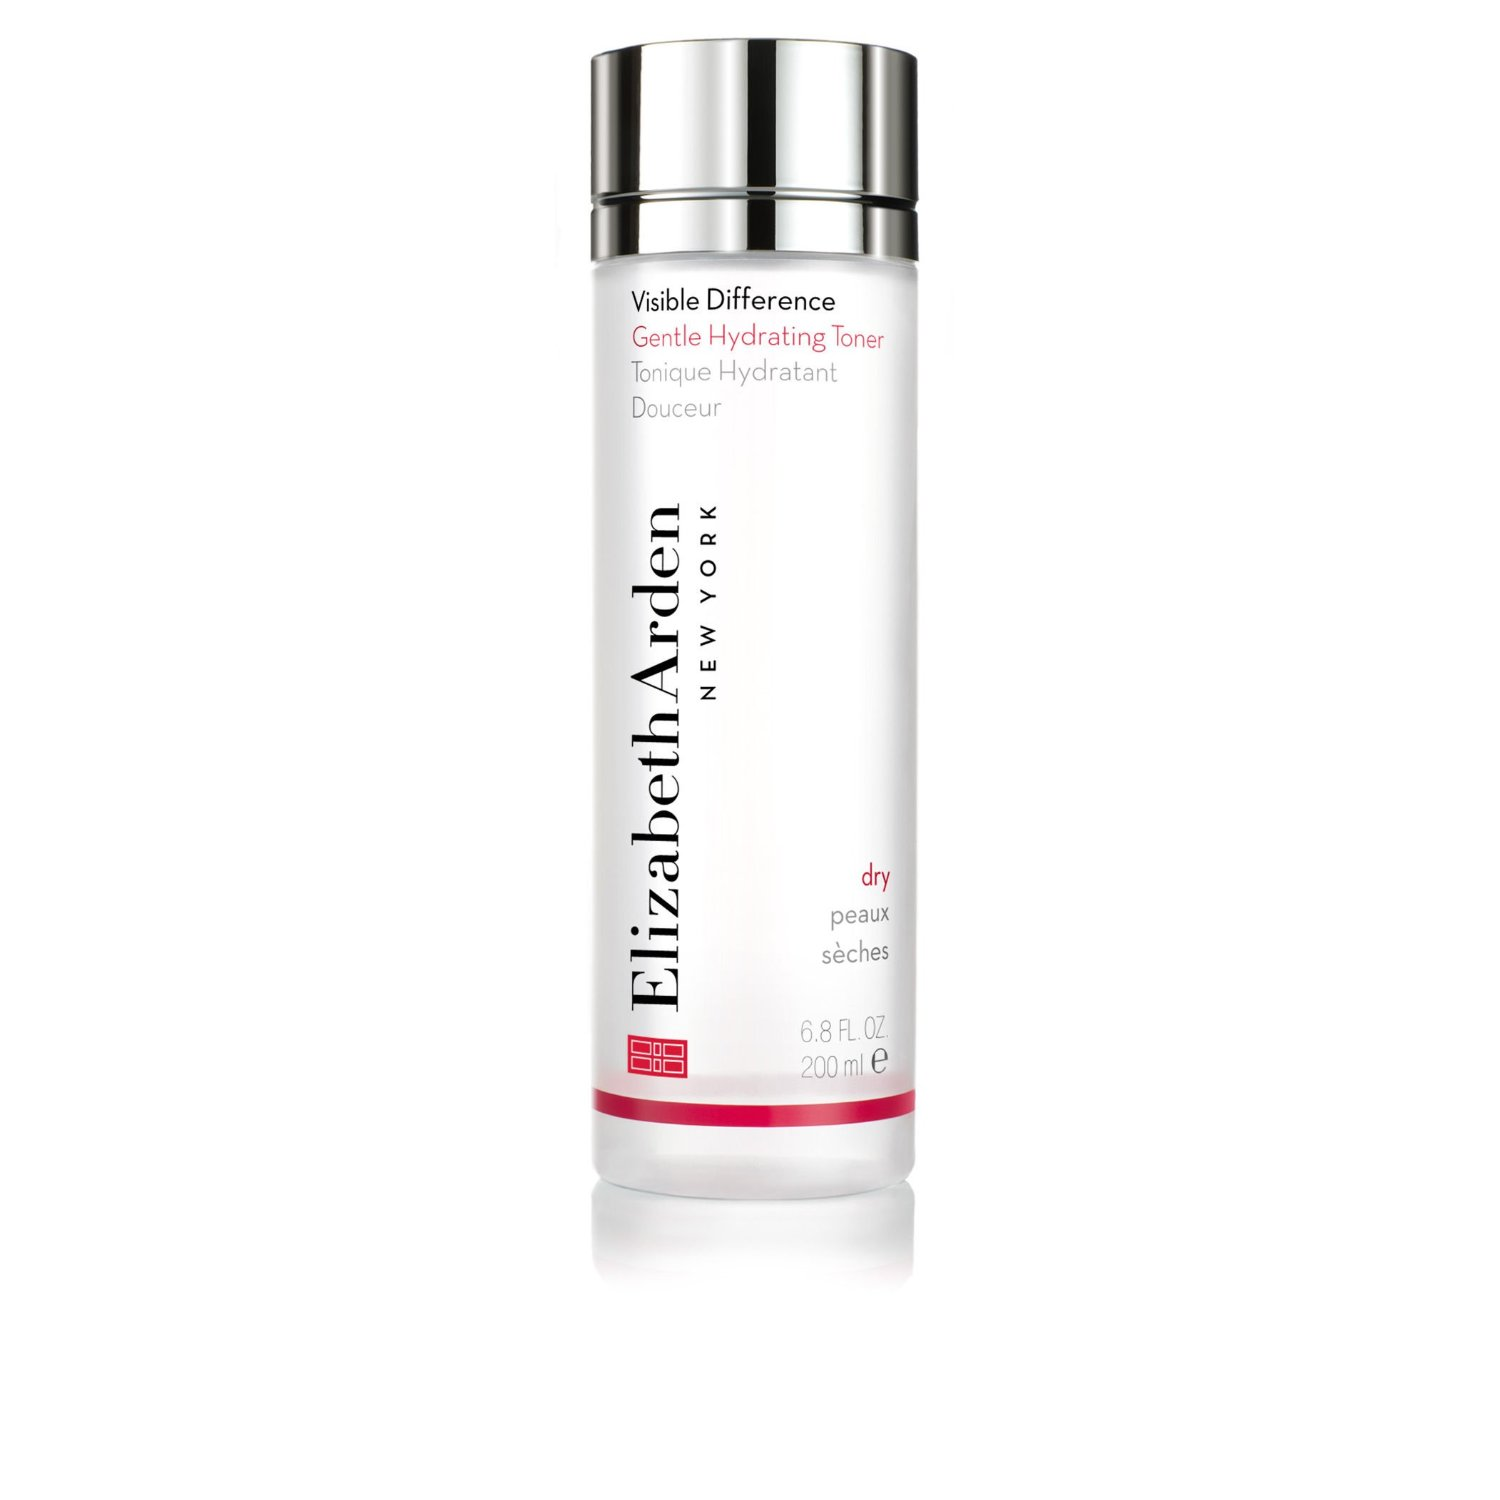 ELIZABETH ARDEN VISIBLE DIFFERENCE GENTLE HYDRATING TONER 200 ML